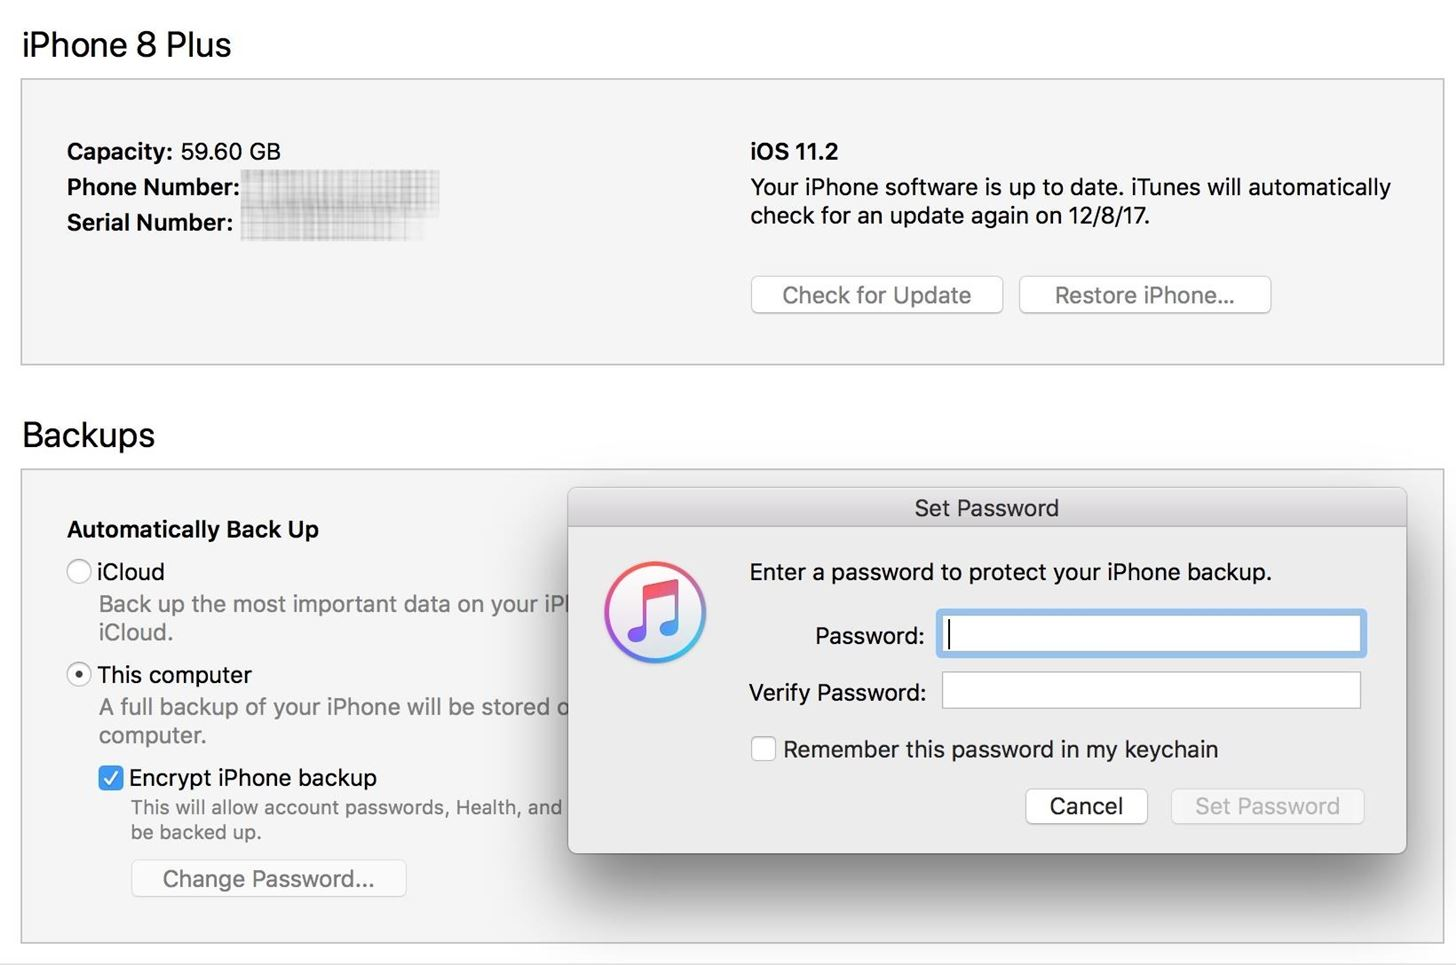 How to reset iphone backup password on itunes